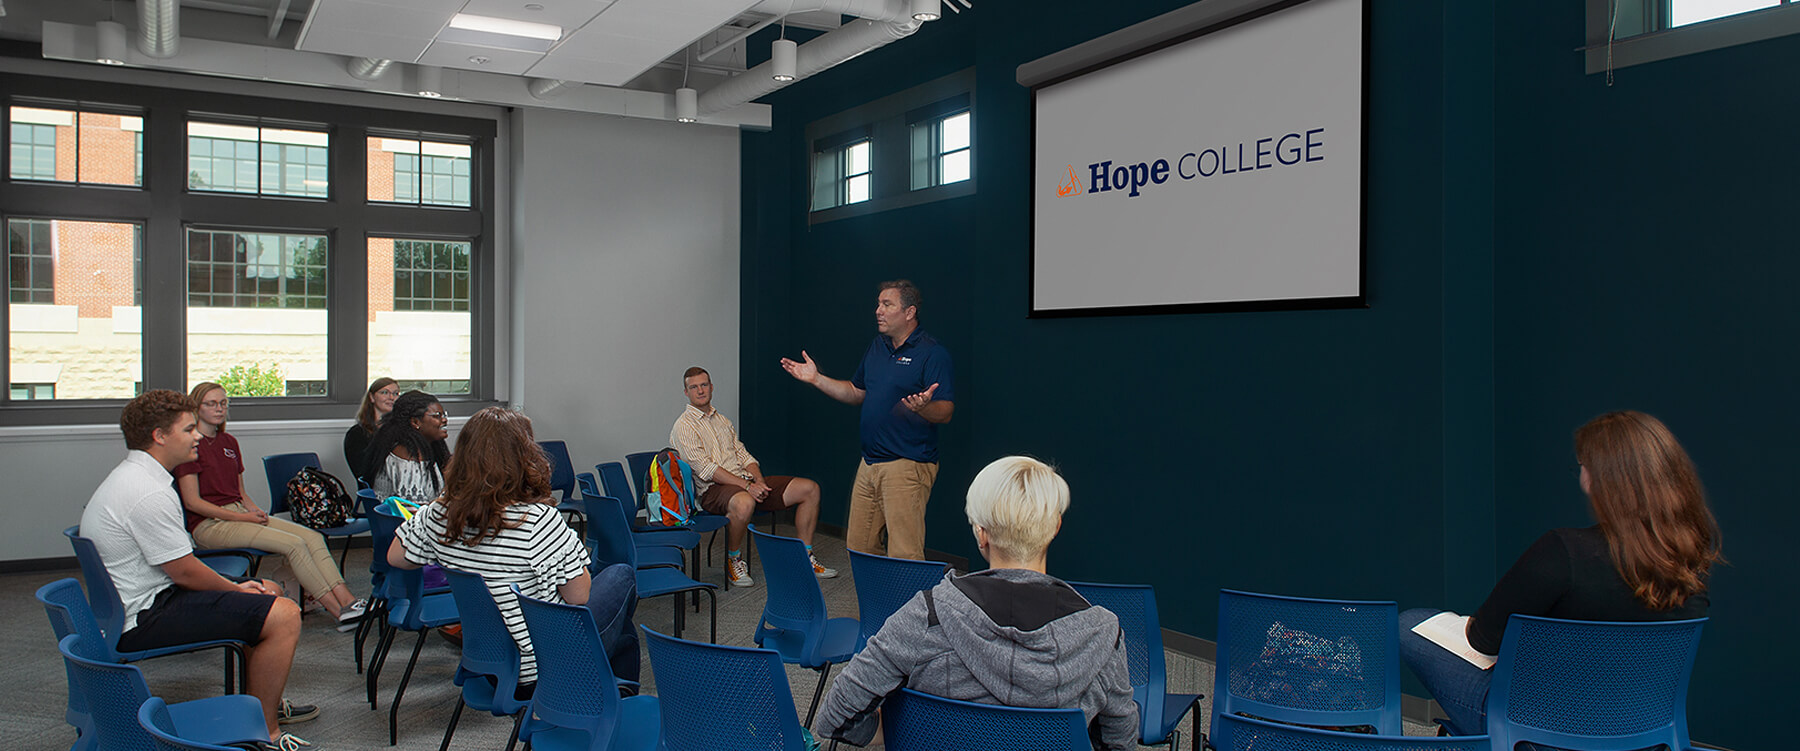 Hope College Ministries Center